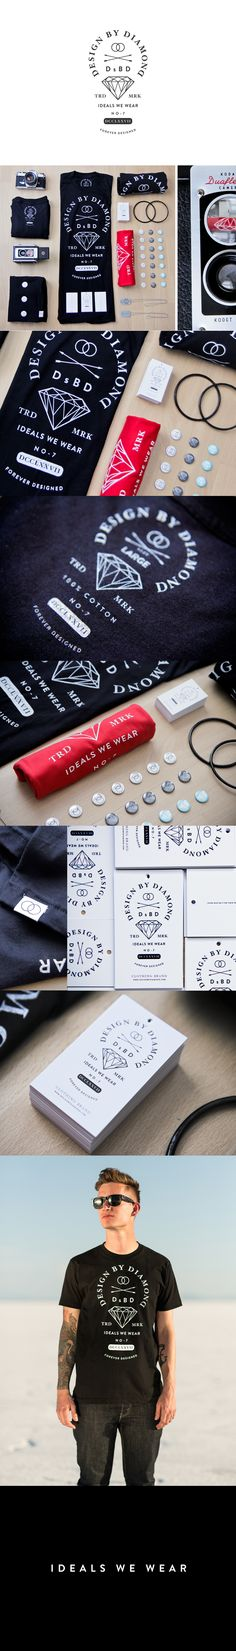 Design By Diamondst | #stationary #corporate #design #corporatedesign #identity #branding #marketing < repinned by www.BlickeDeeler.de | Take a look at www.LogoGestaltung-Hamburg.de